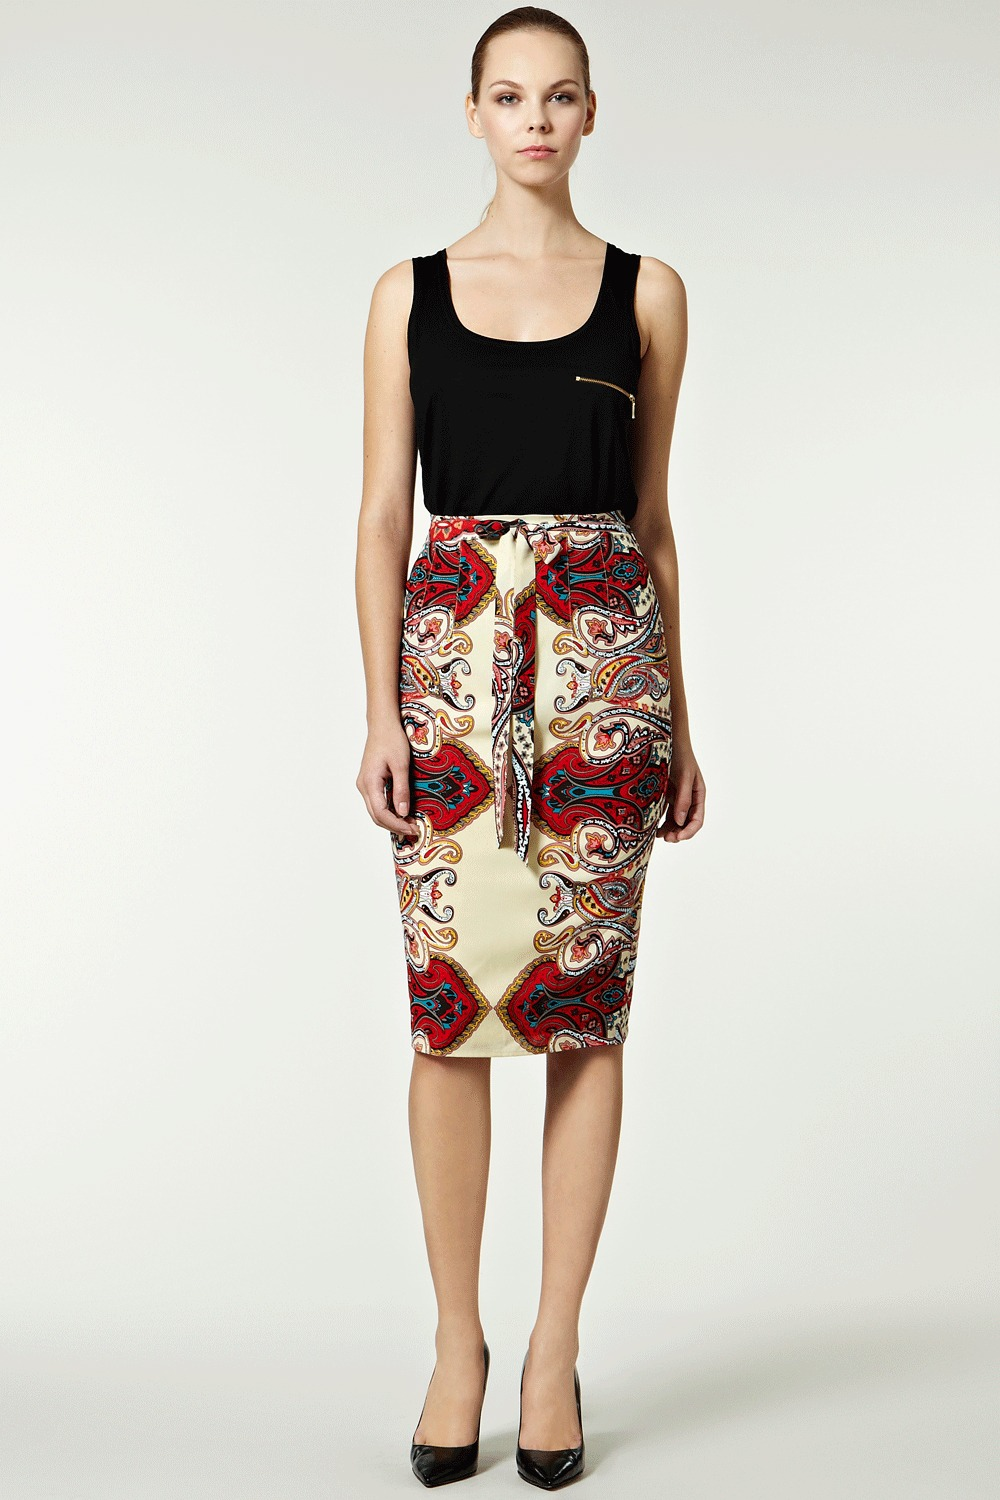 Tejal Scarf Print Pencil Skirt. - length: below the knee; style: pencil; fit: tailored/fitted; waist detail: fitted waist, belted waist/tie at waist/drawstring; waist: high rise; hip detail: fitted at hip; pattern: abstract, patterned/print; occasions: evening, work; fibres: polyester/polyamide - 100%; predominant colour: multicoloured; trends: 1950's, prints; pattern type: fabric; pattern size: standard